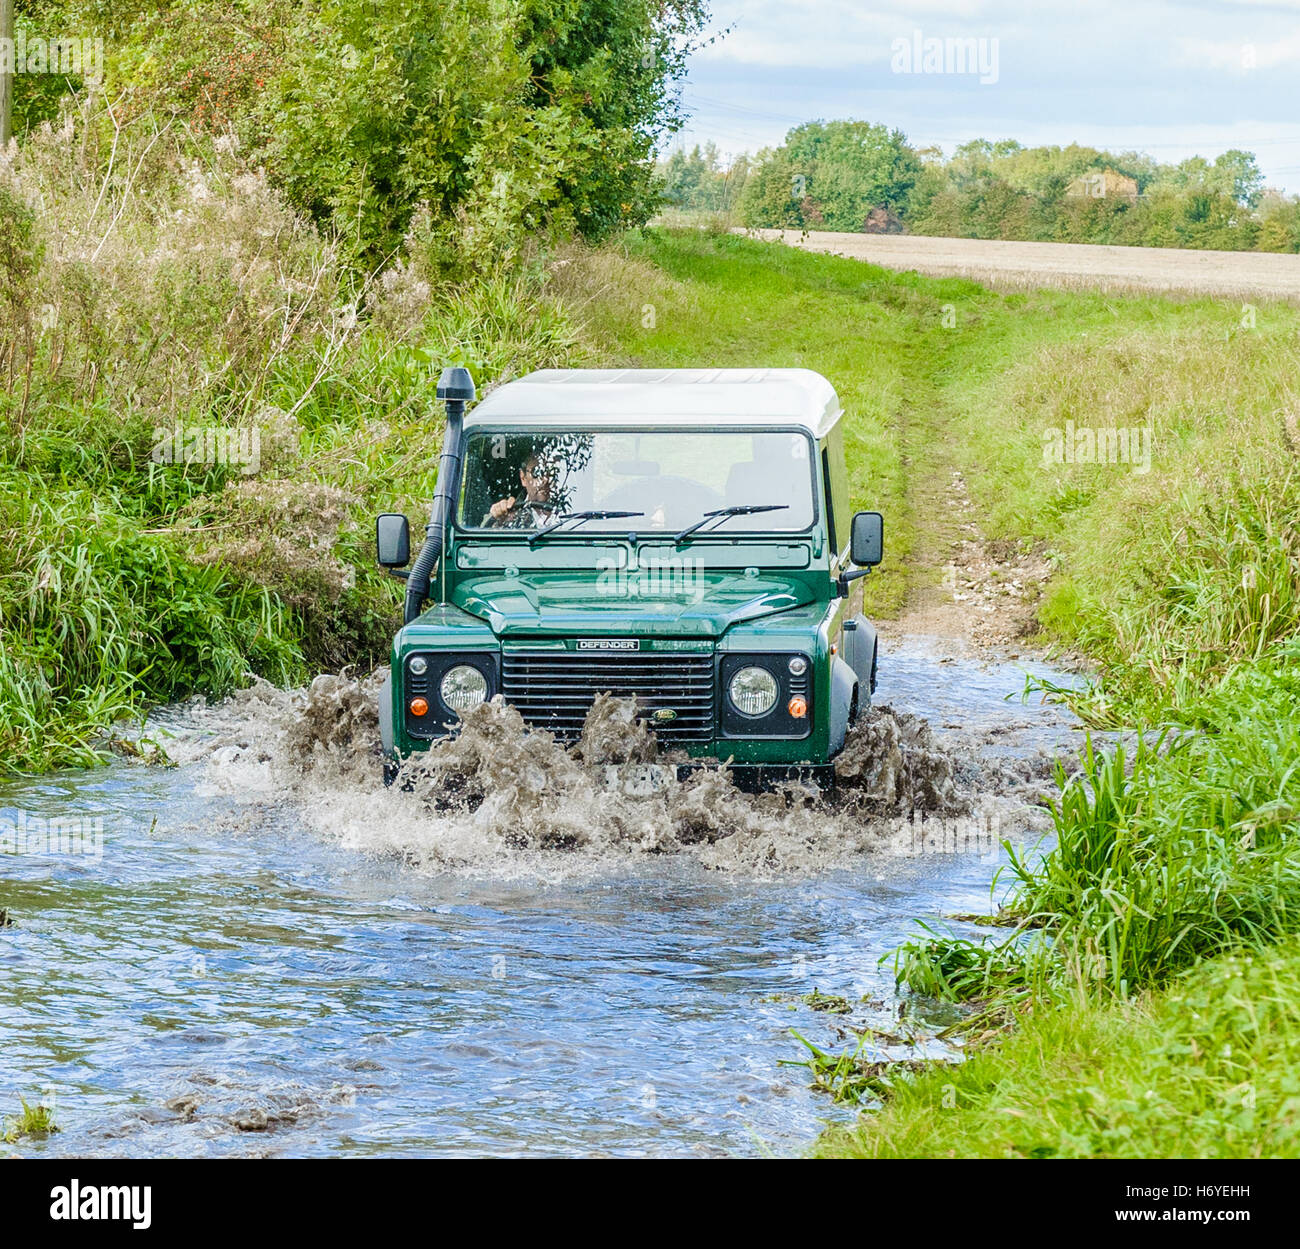 A Landrover Defender 90 crossing, or fording, a stream or river - Stock Image